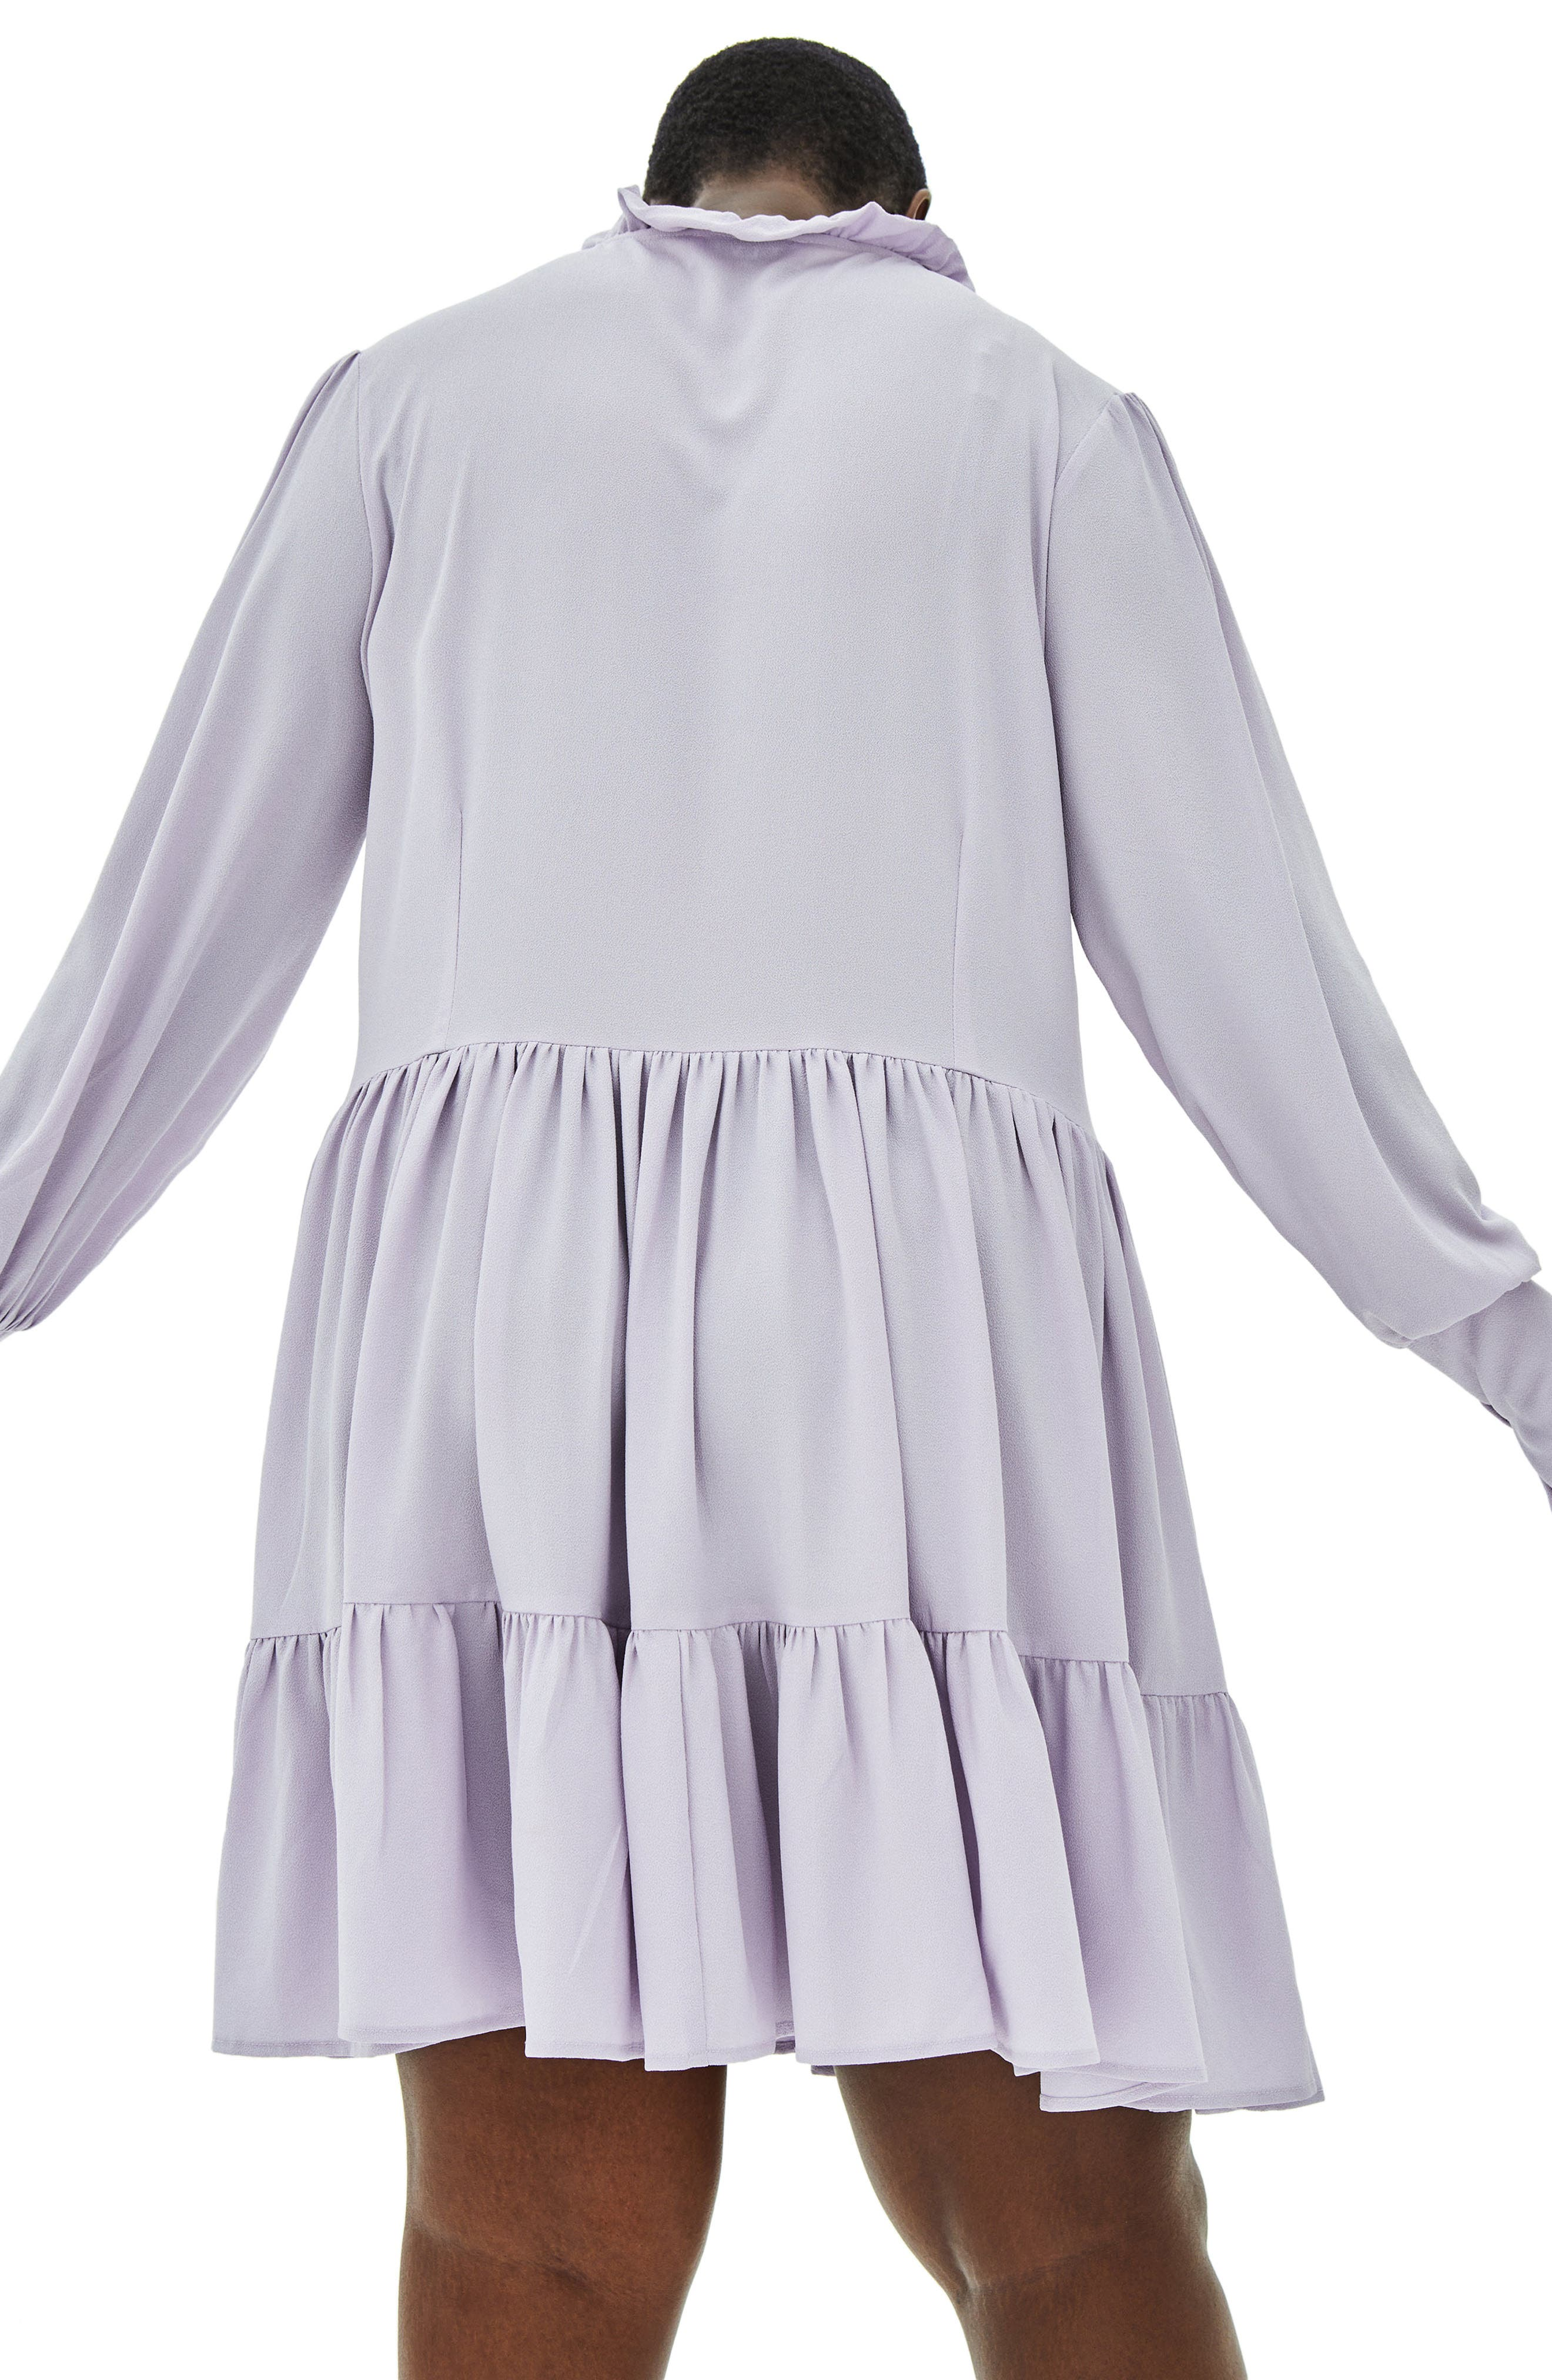 The Poe Rouleau Sleeve Tiered Dress,                             Alternate thumbnail 2, color,                             500